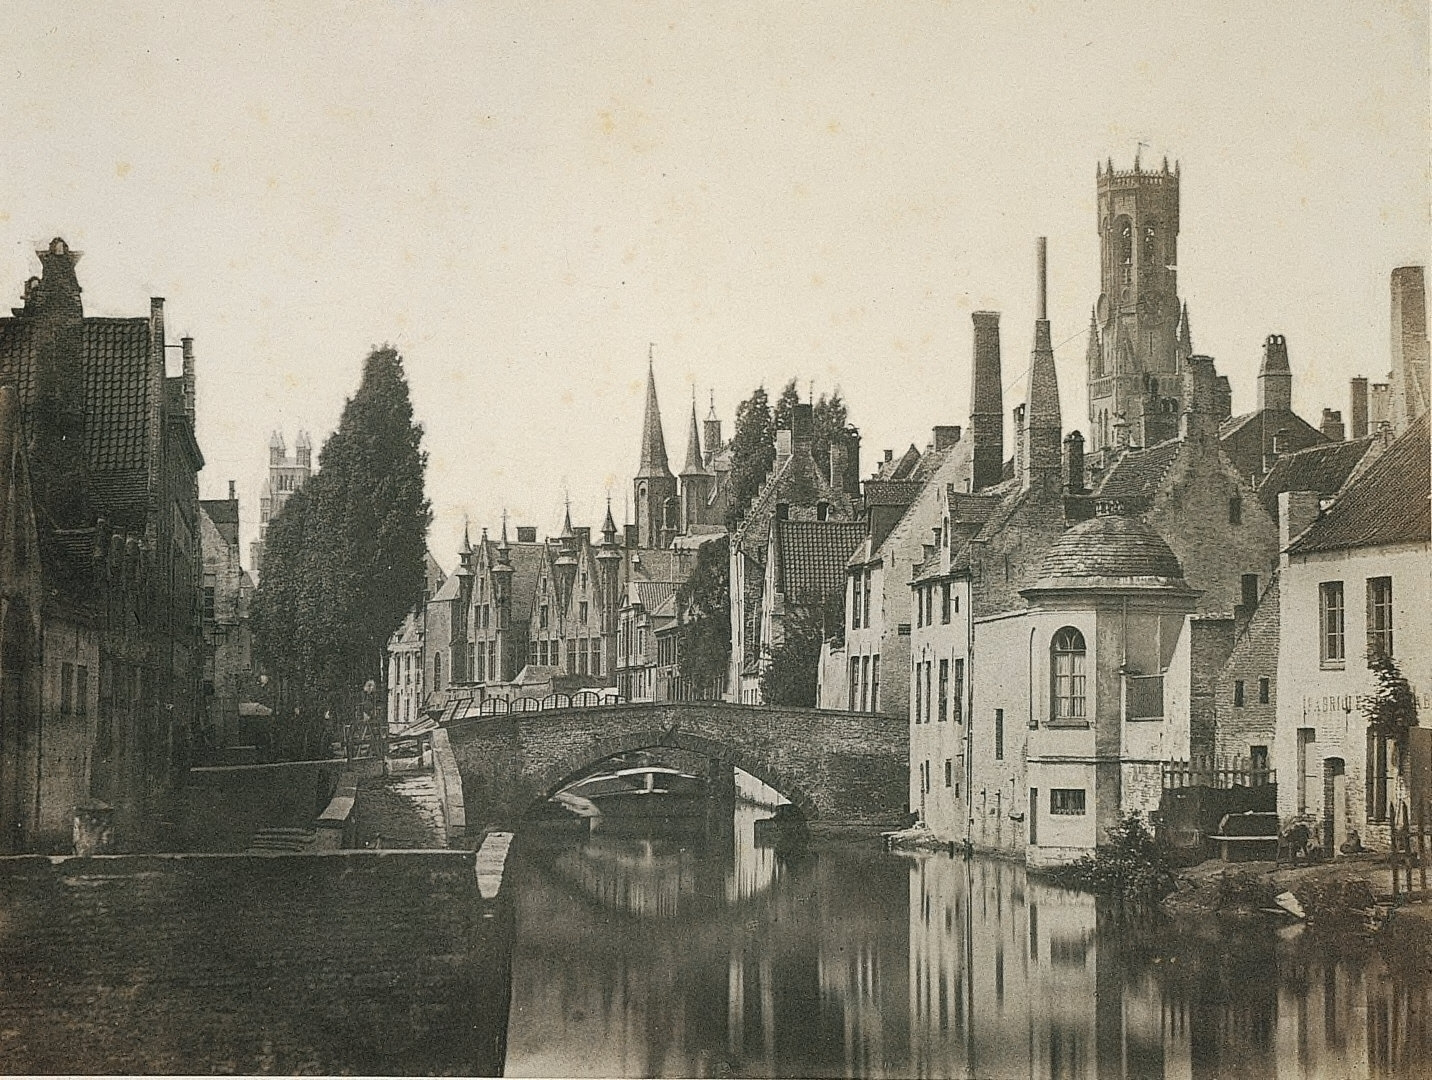 Lateral View of the Franc de Bruges taken from the Pont du Moulin